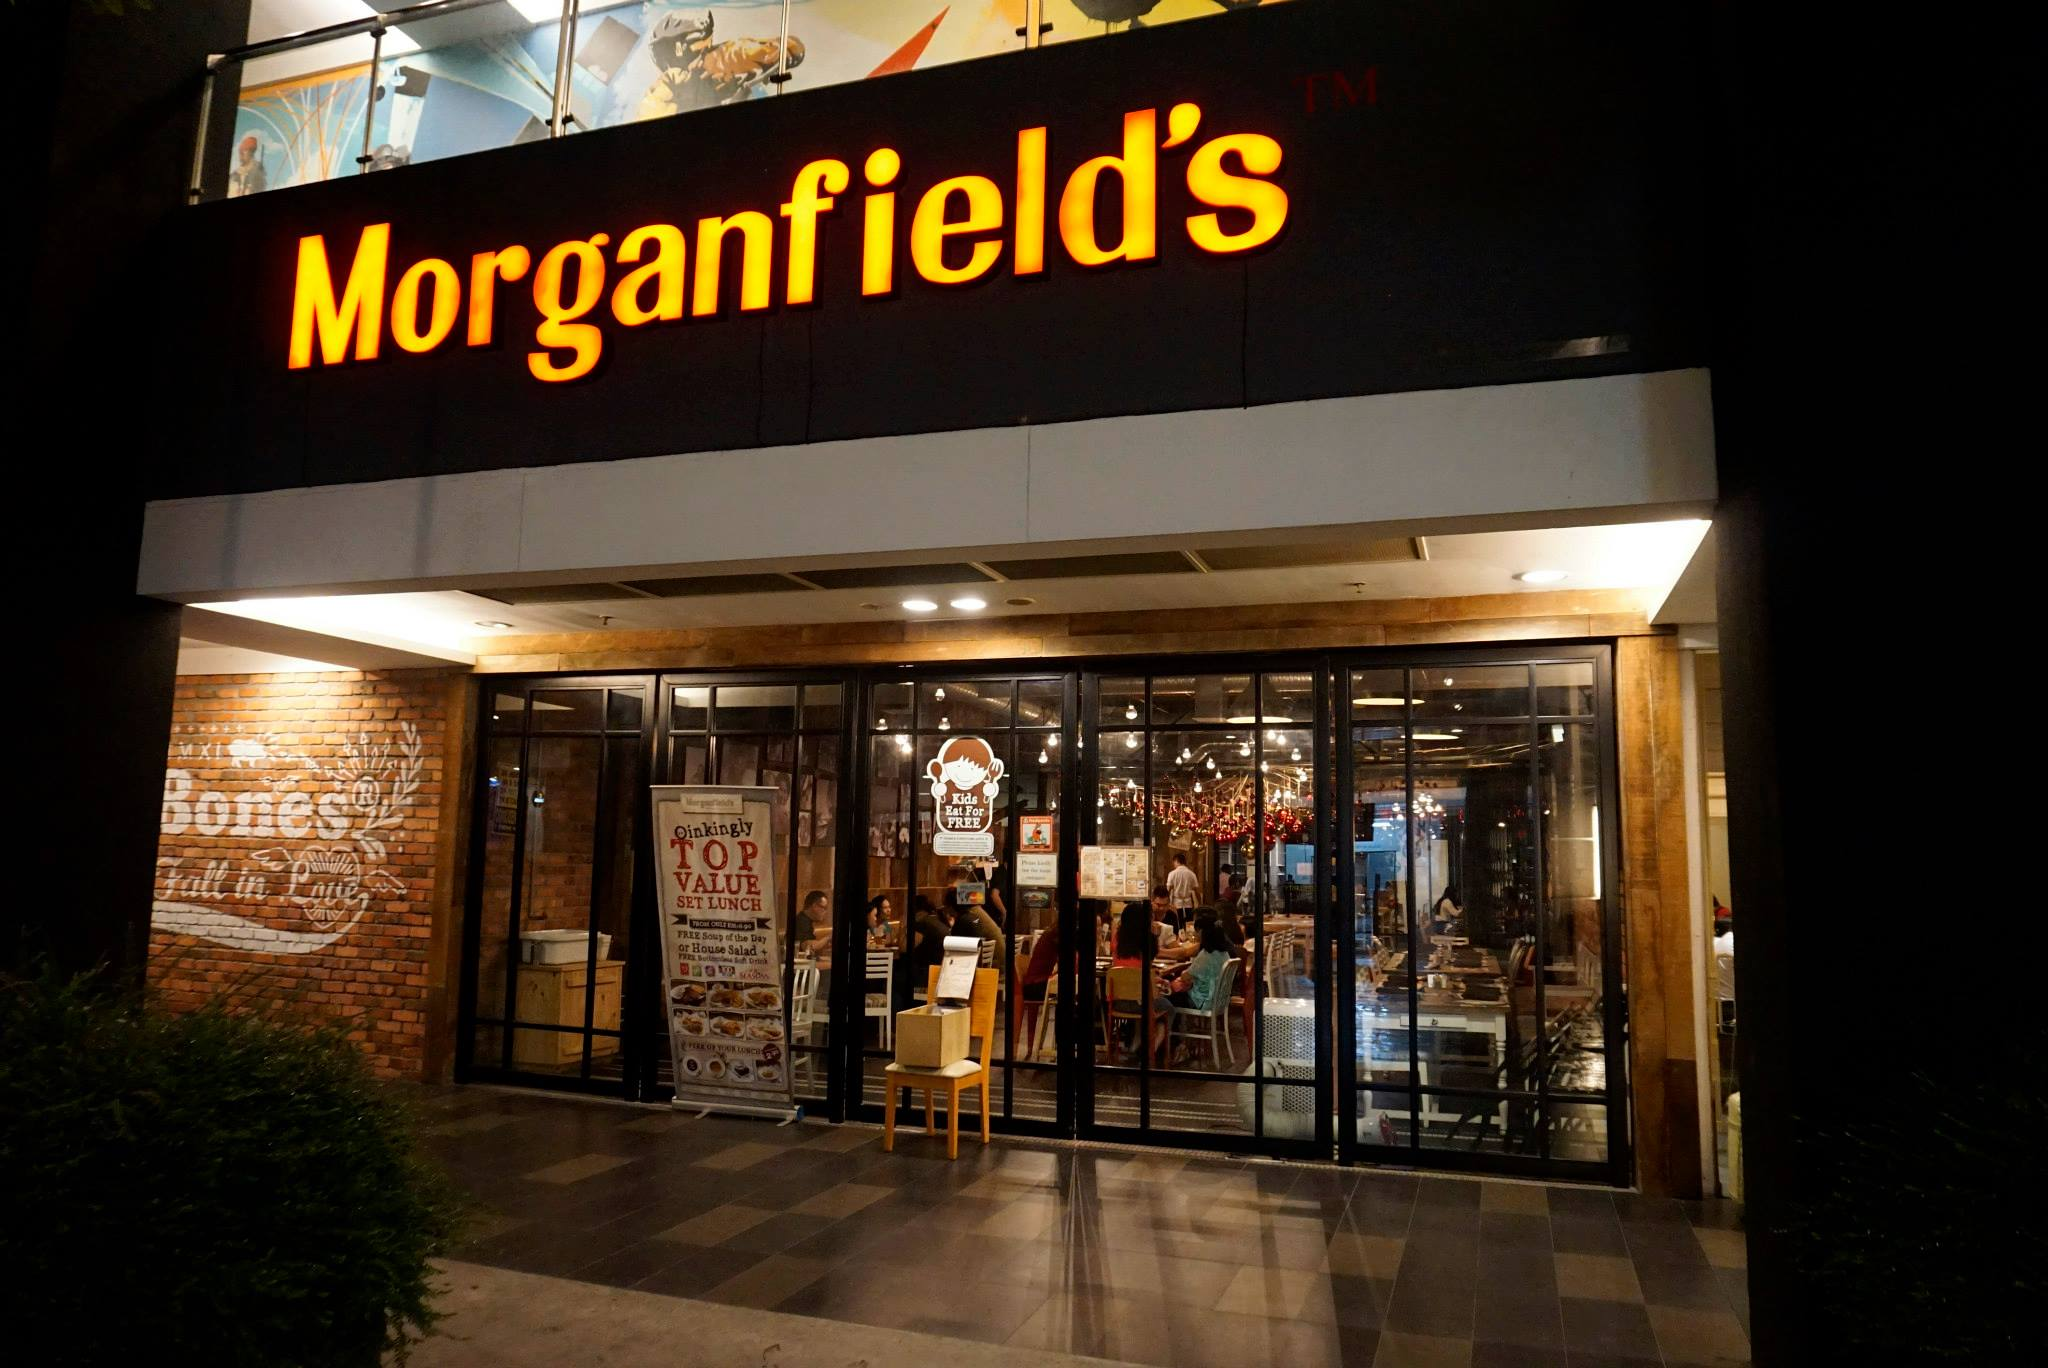 morganfield men Lot ug 30 & 31 tel: +606-7611860 morganfield's @ mount austin, johor: jalan  austin heights 8/5 tel: +607-3587705 morganfield's @ da men mall, usj.